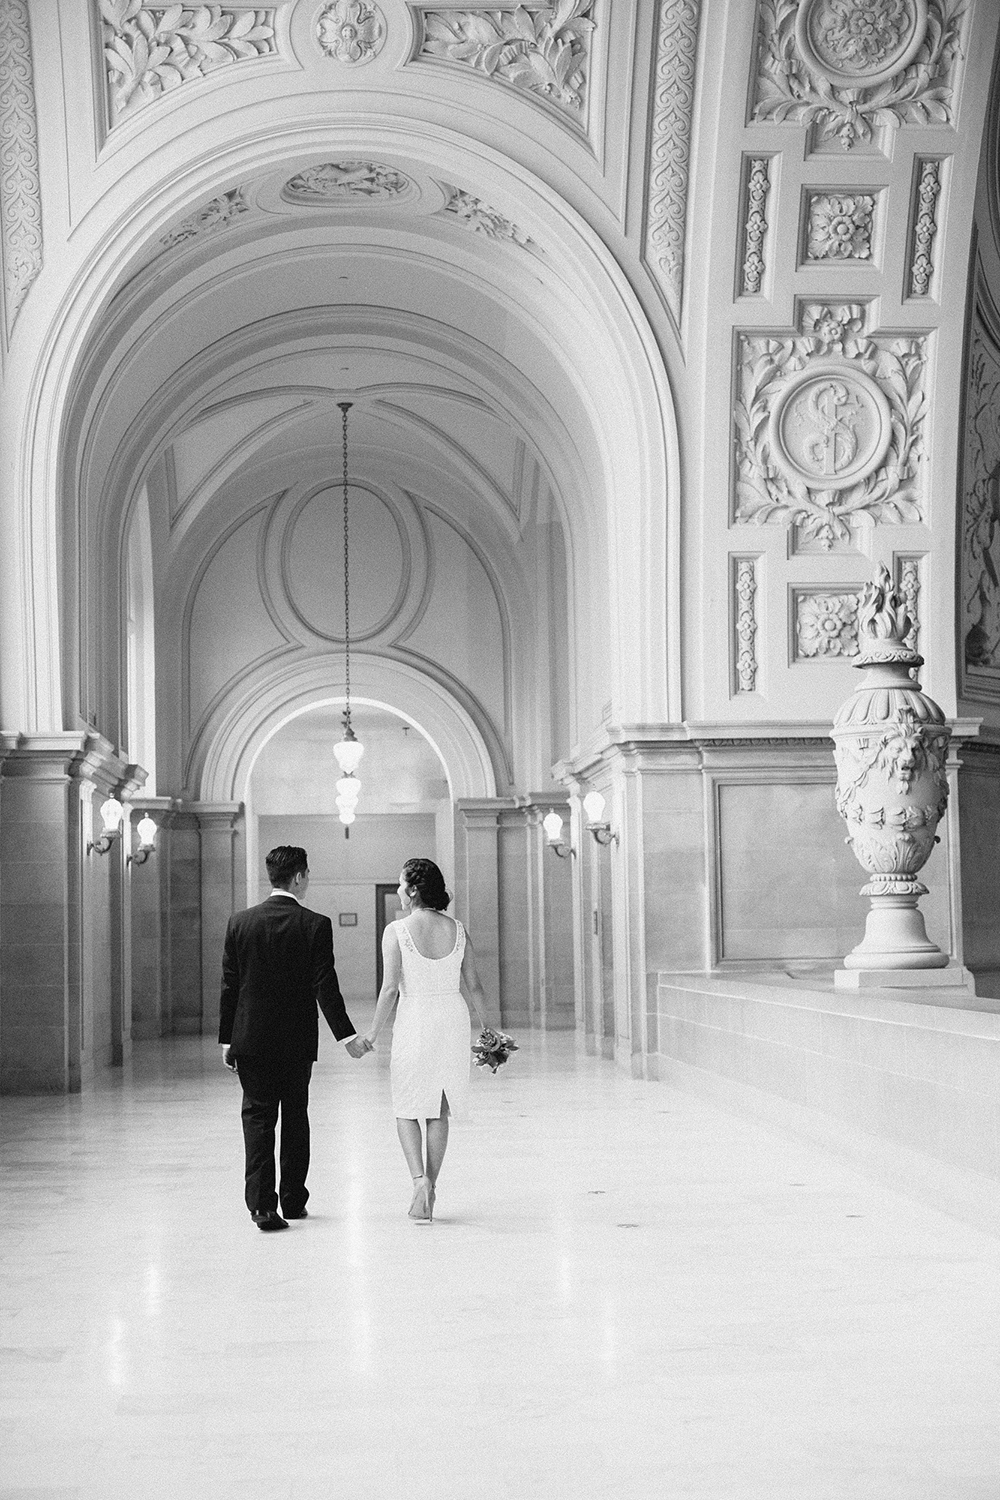 wedding-at-san-francisco-city-hall-10.html